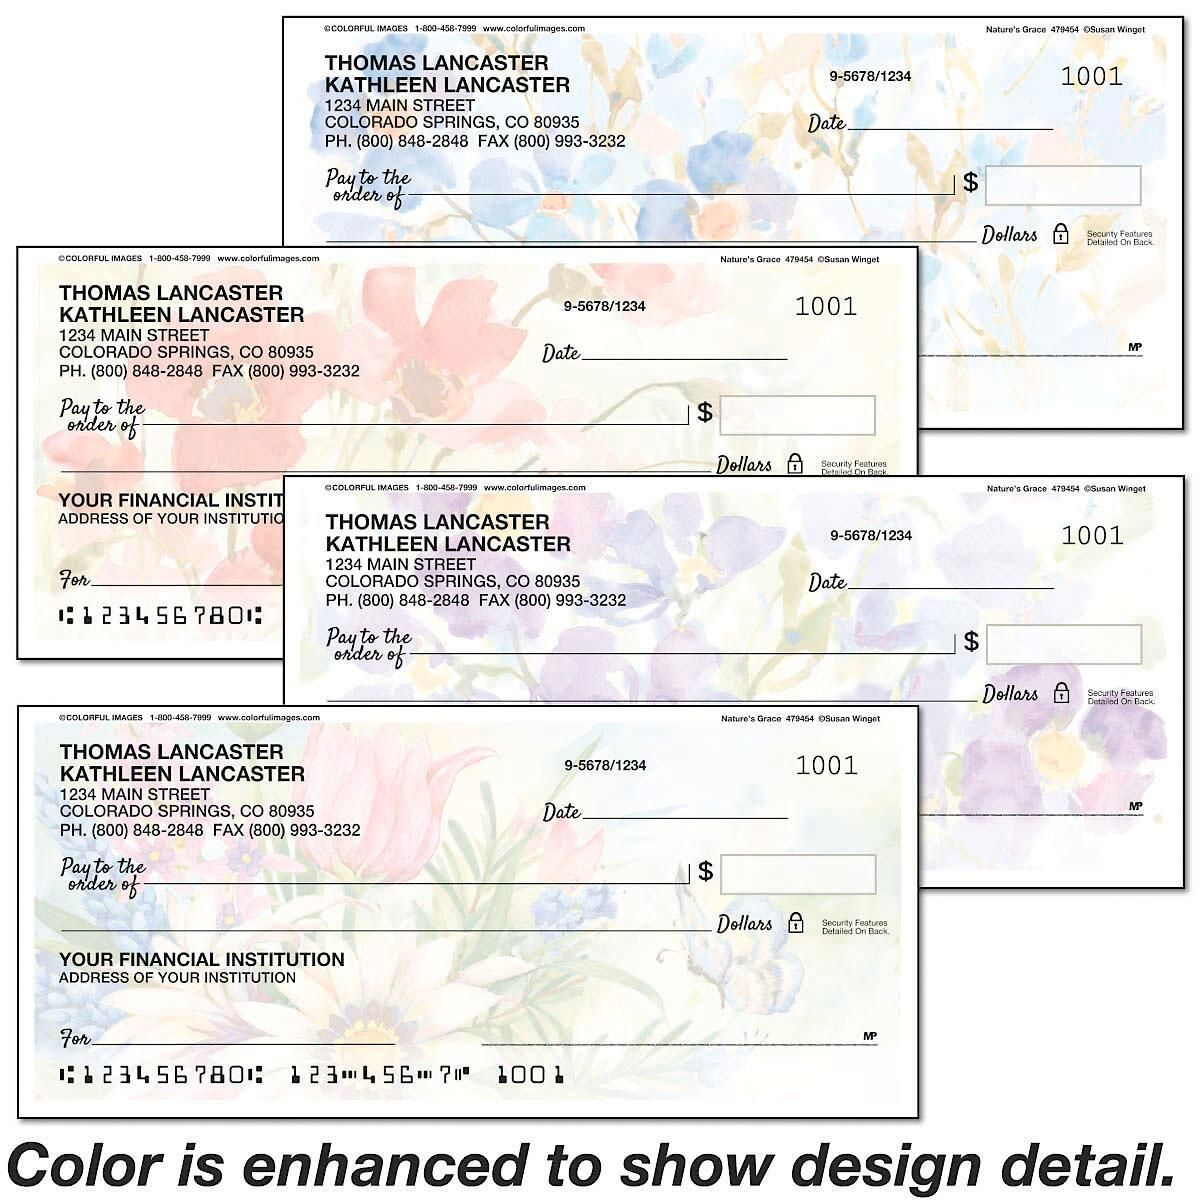 Natures Grace Personal Checks